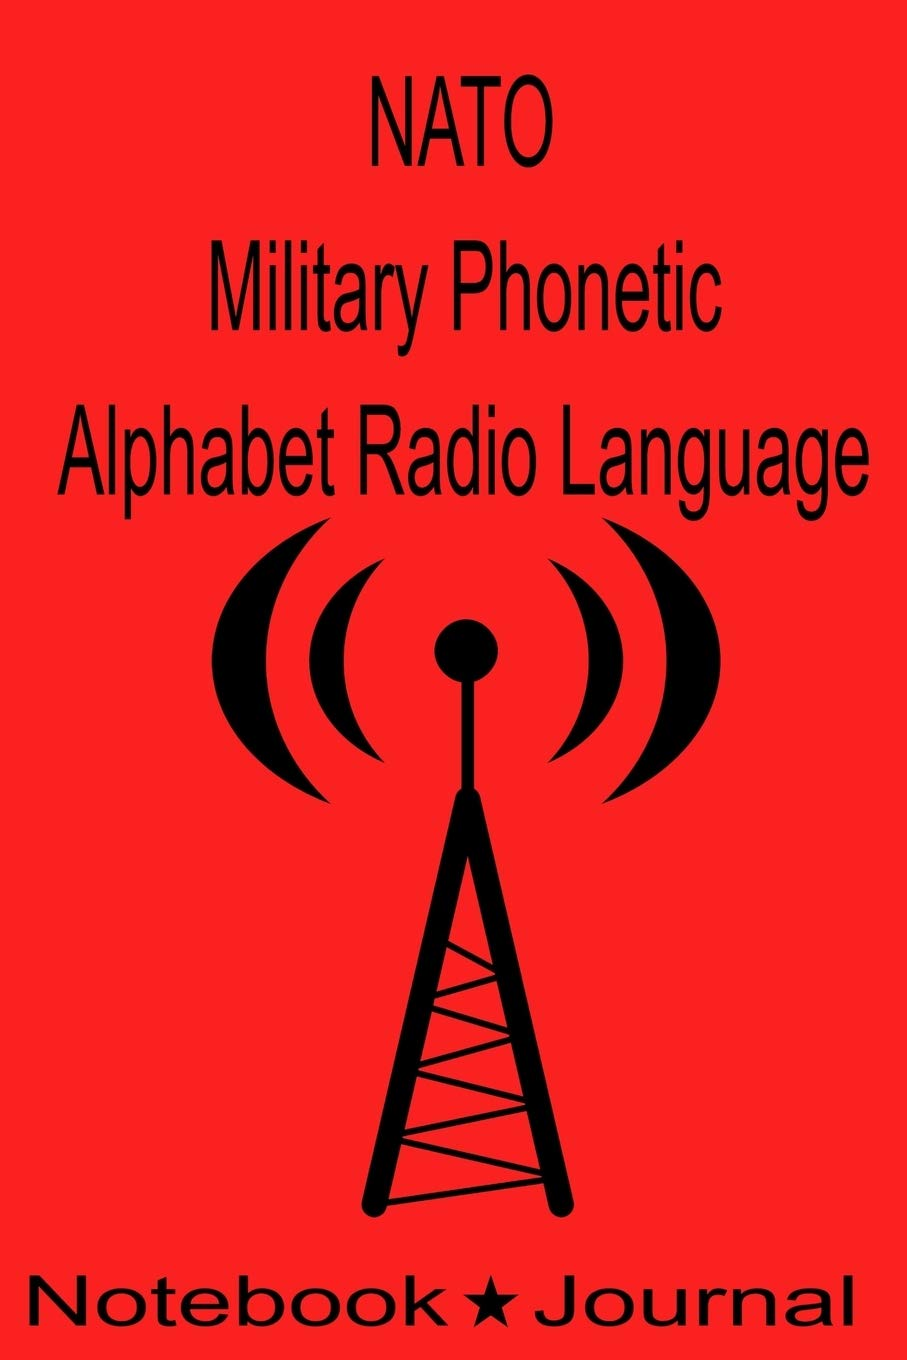 NATO Military Phonetic Alphabet Radio Language Notebook